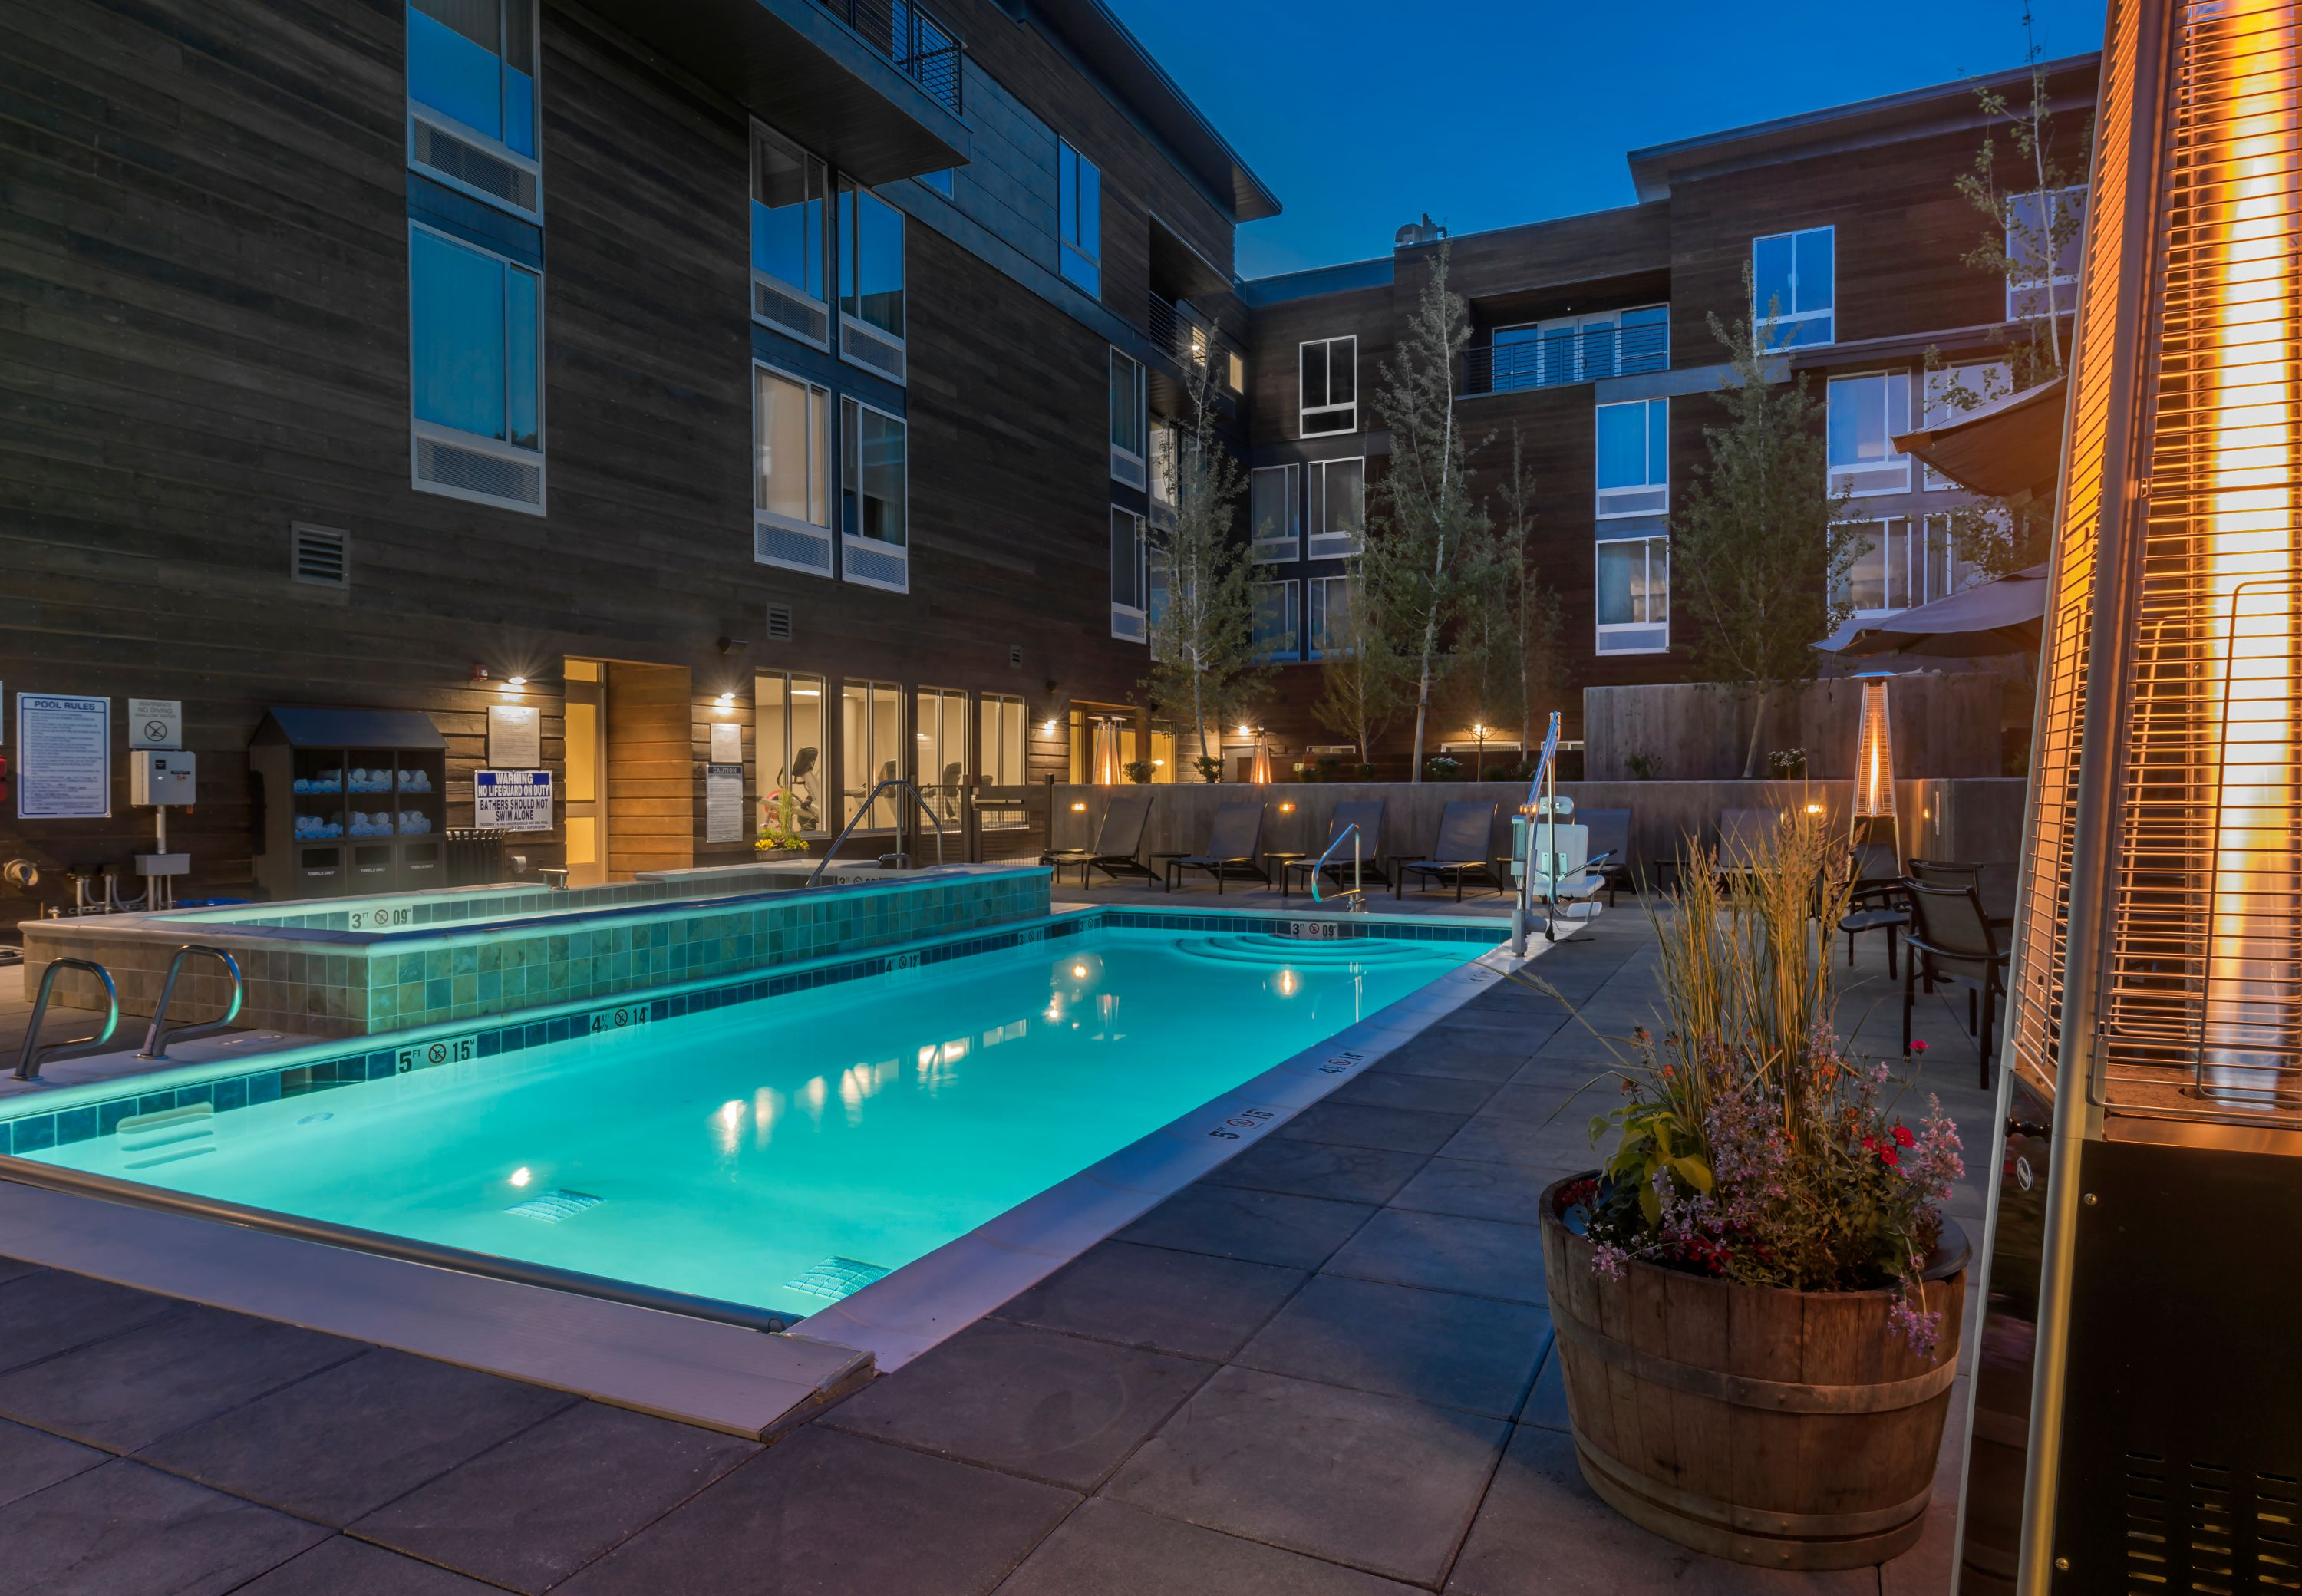 SpringHill Suites by Marriott Jackson Hole image 11